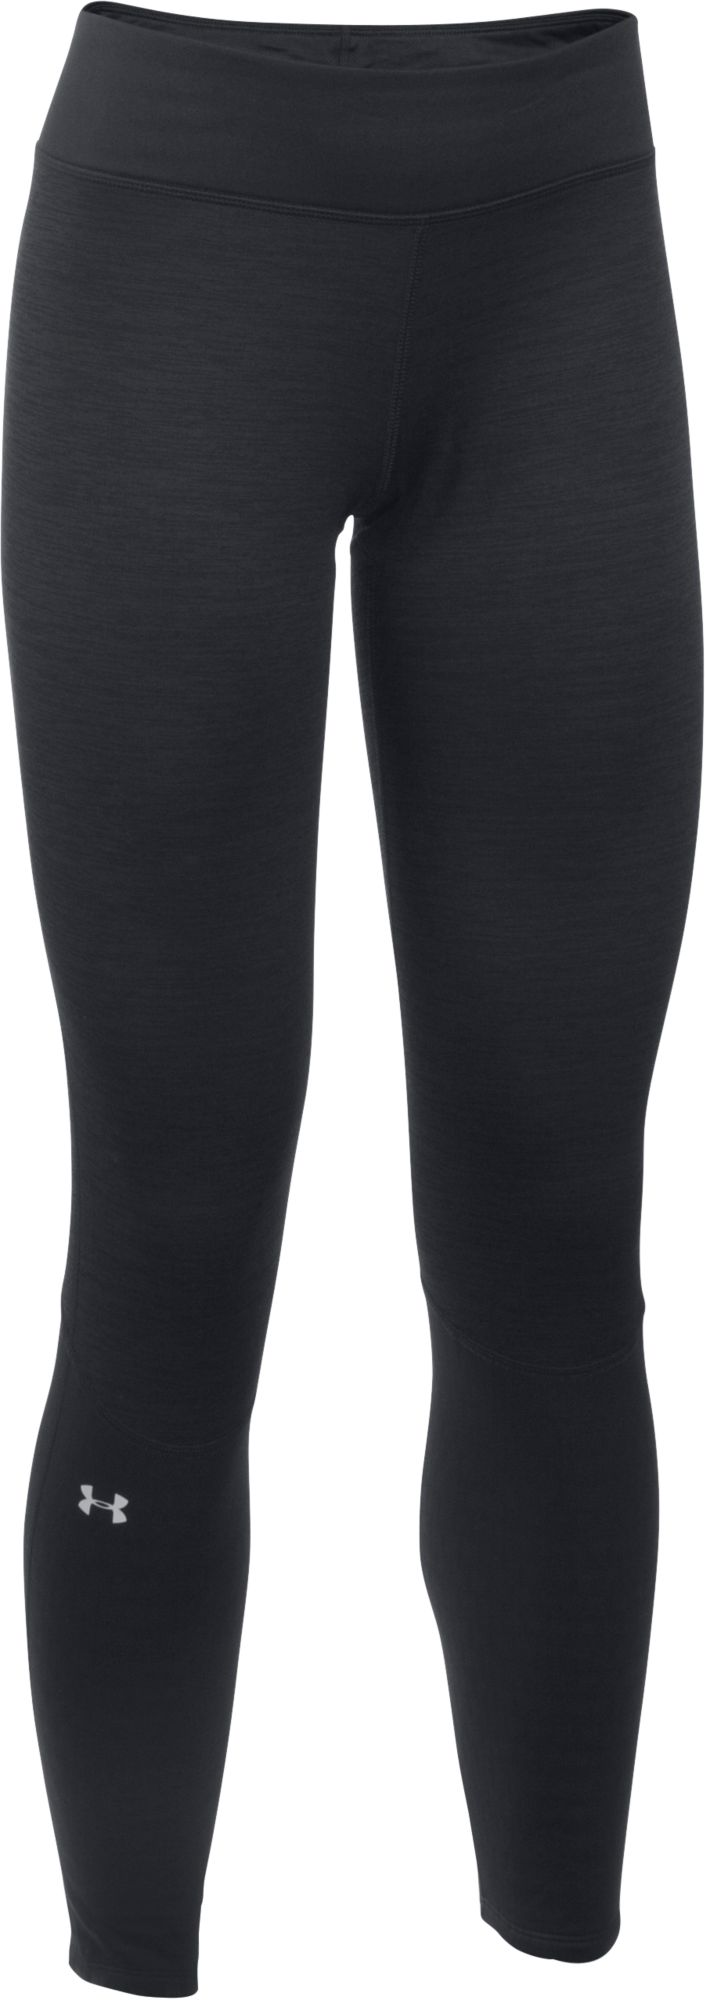 6de7570f4dd0b Under Armour Women's Base 4.0 Leggings | DICK'S Sporting ...